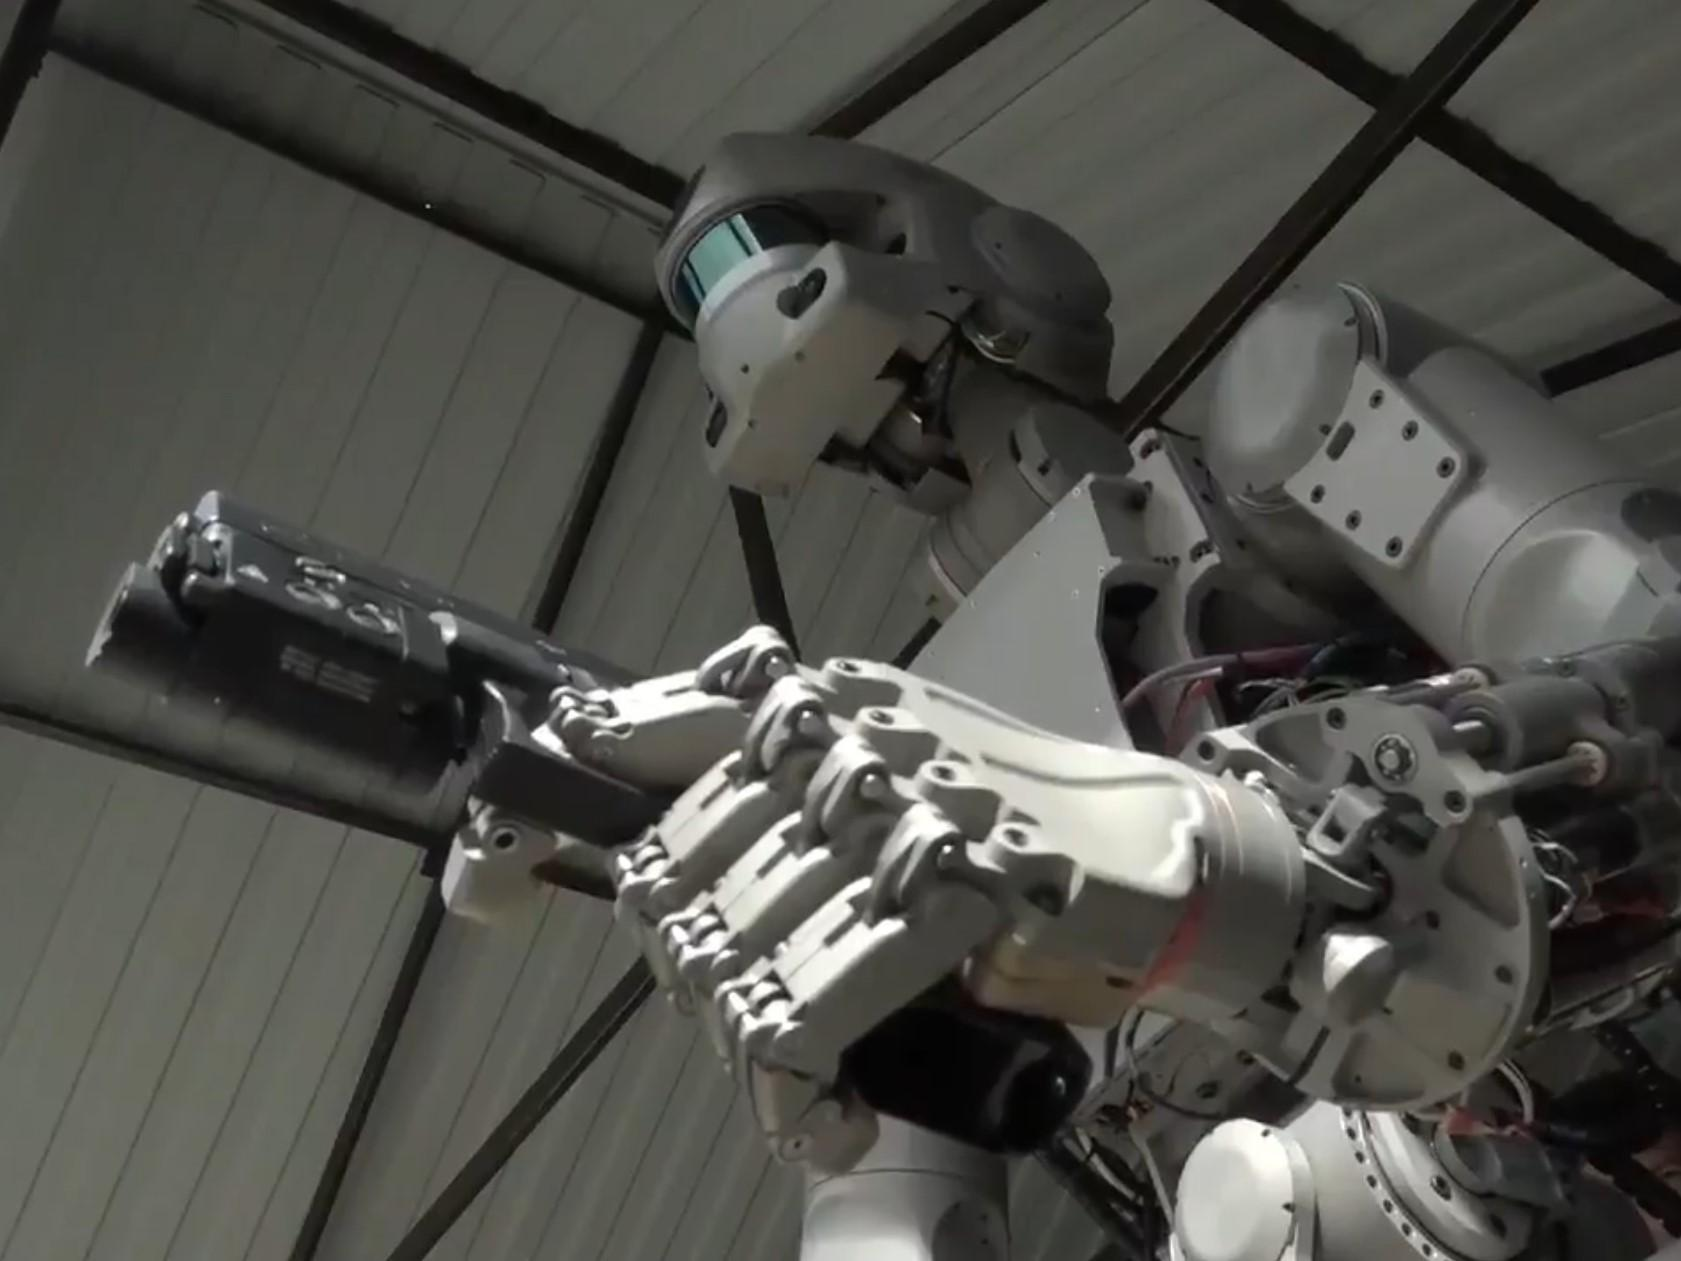 Gun-toting humanoid robot sent into space